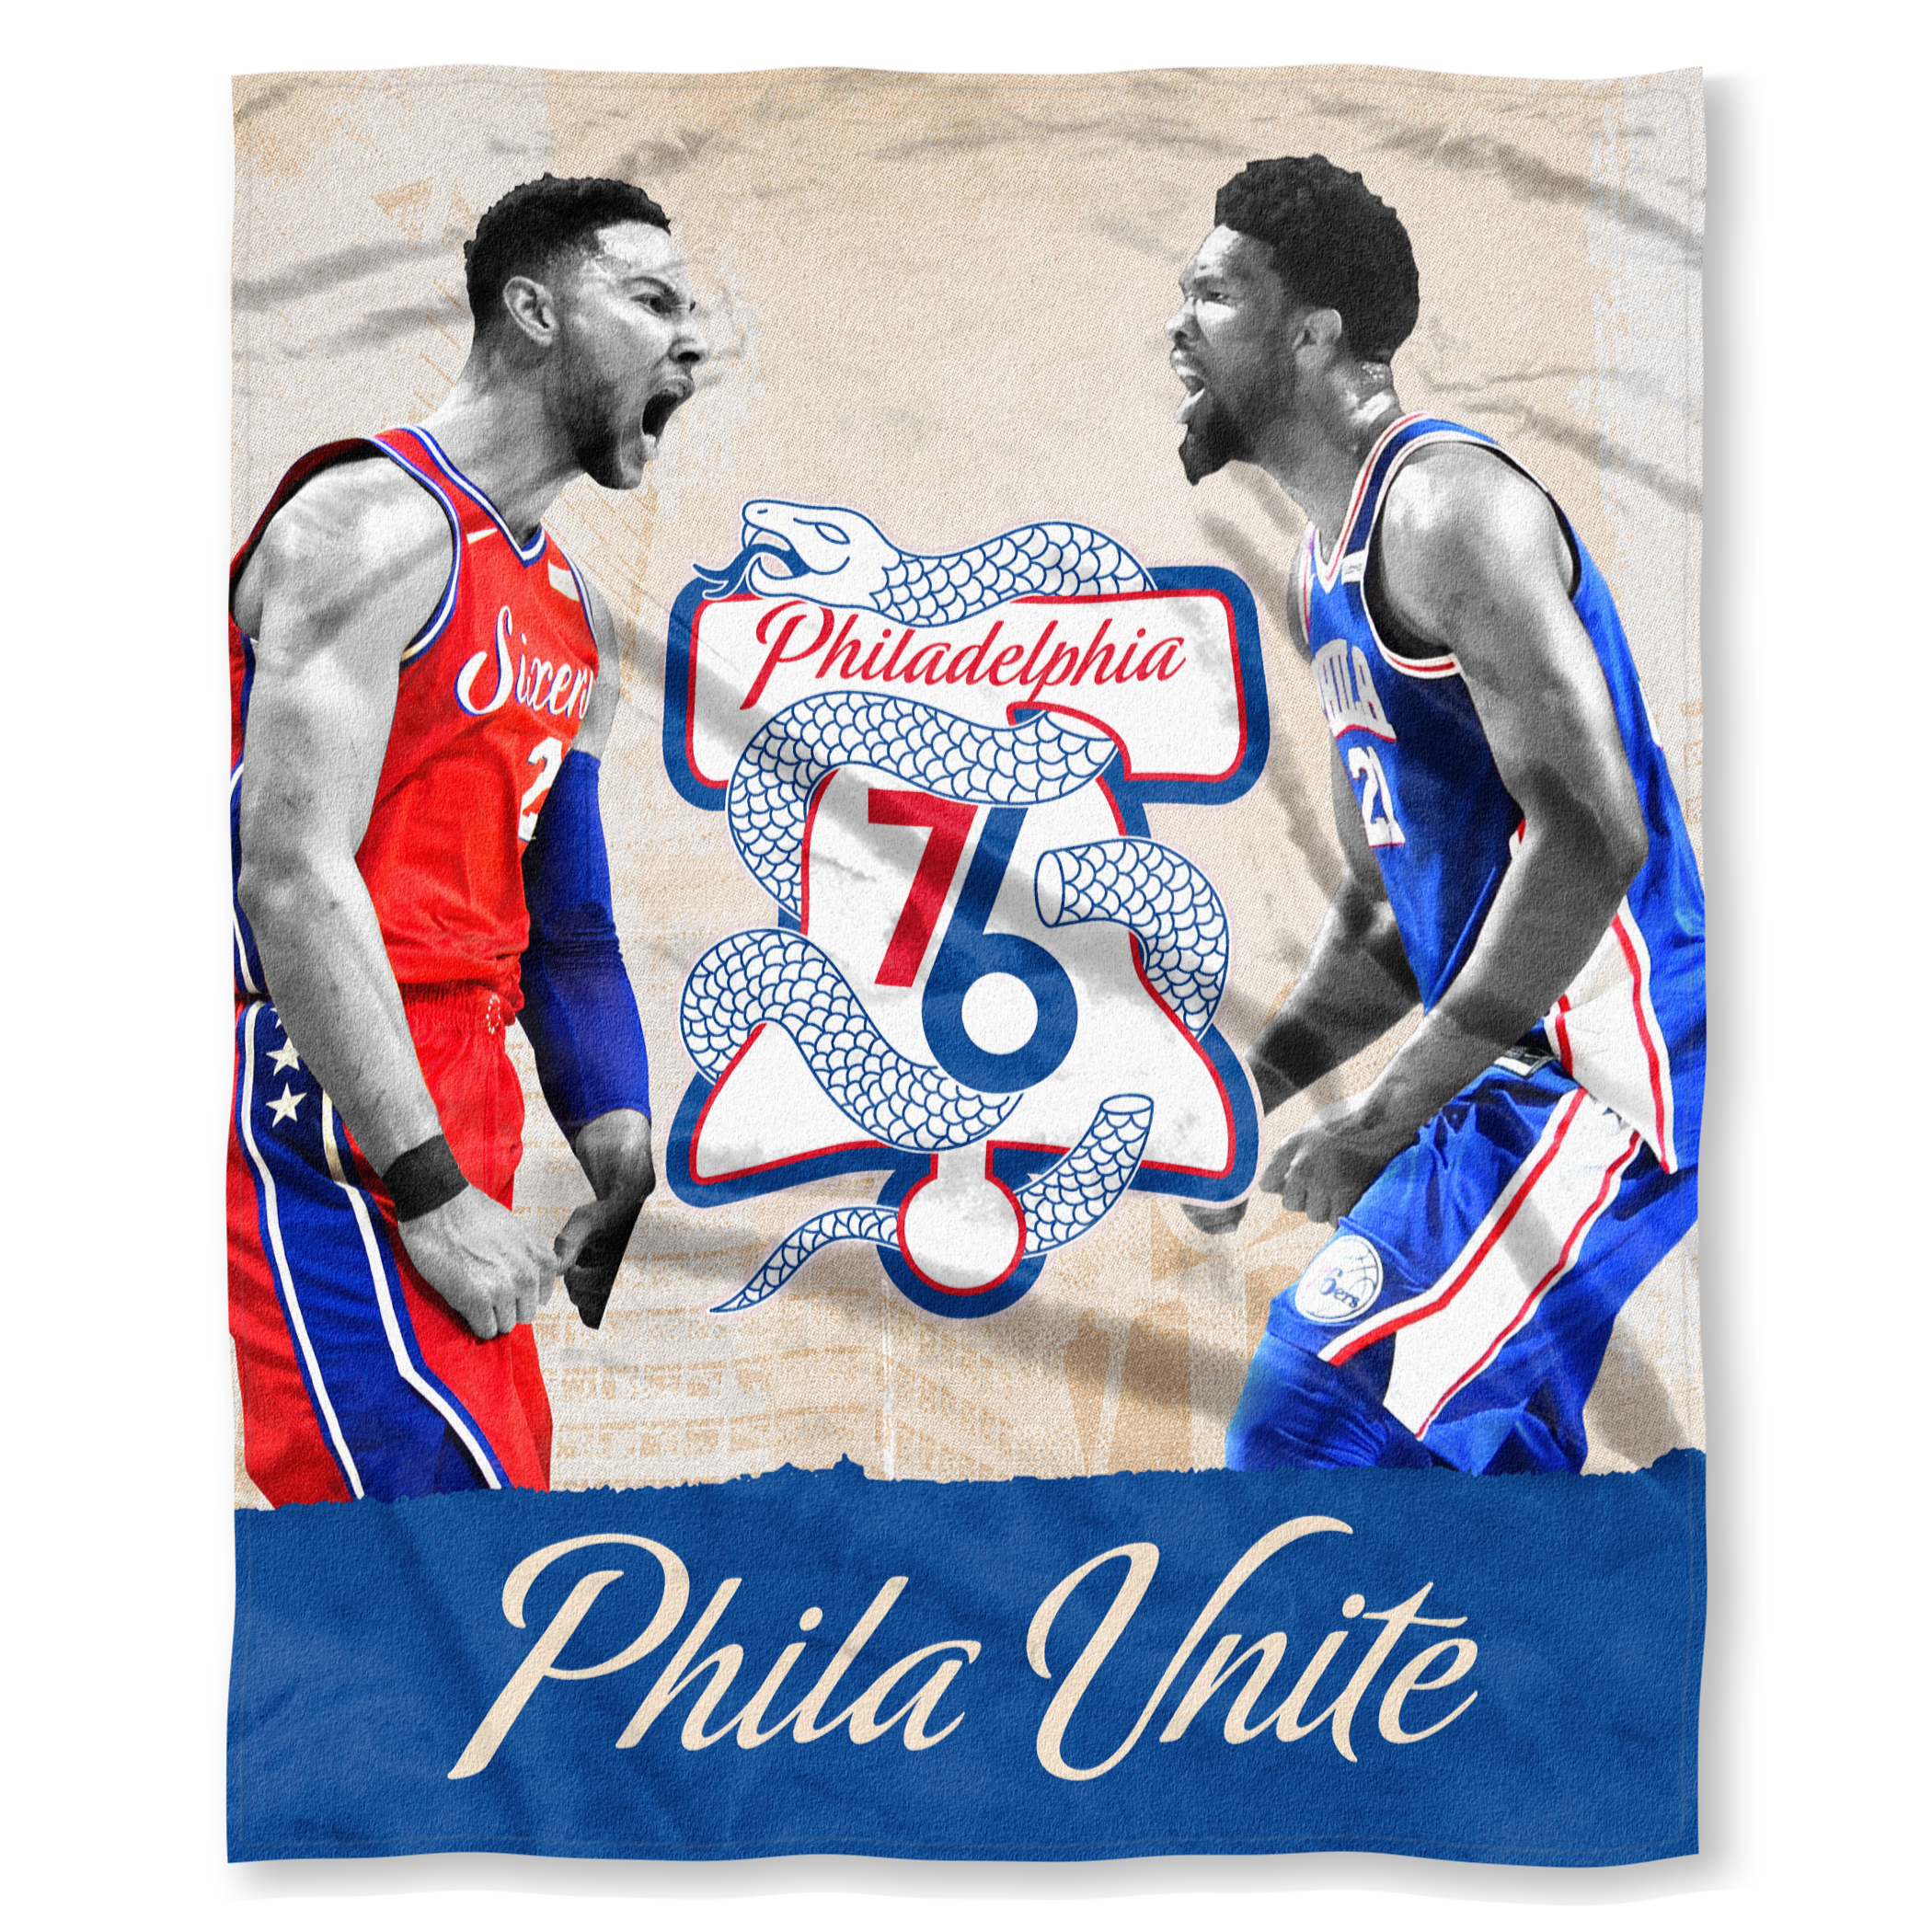 c474849e Philadelphia 76ers Silk Touch Phila Unite Ben Simmons and Joel Embiid  Blanket by The Northwest